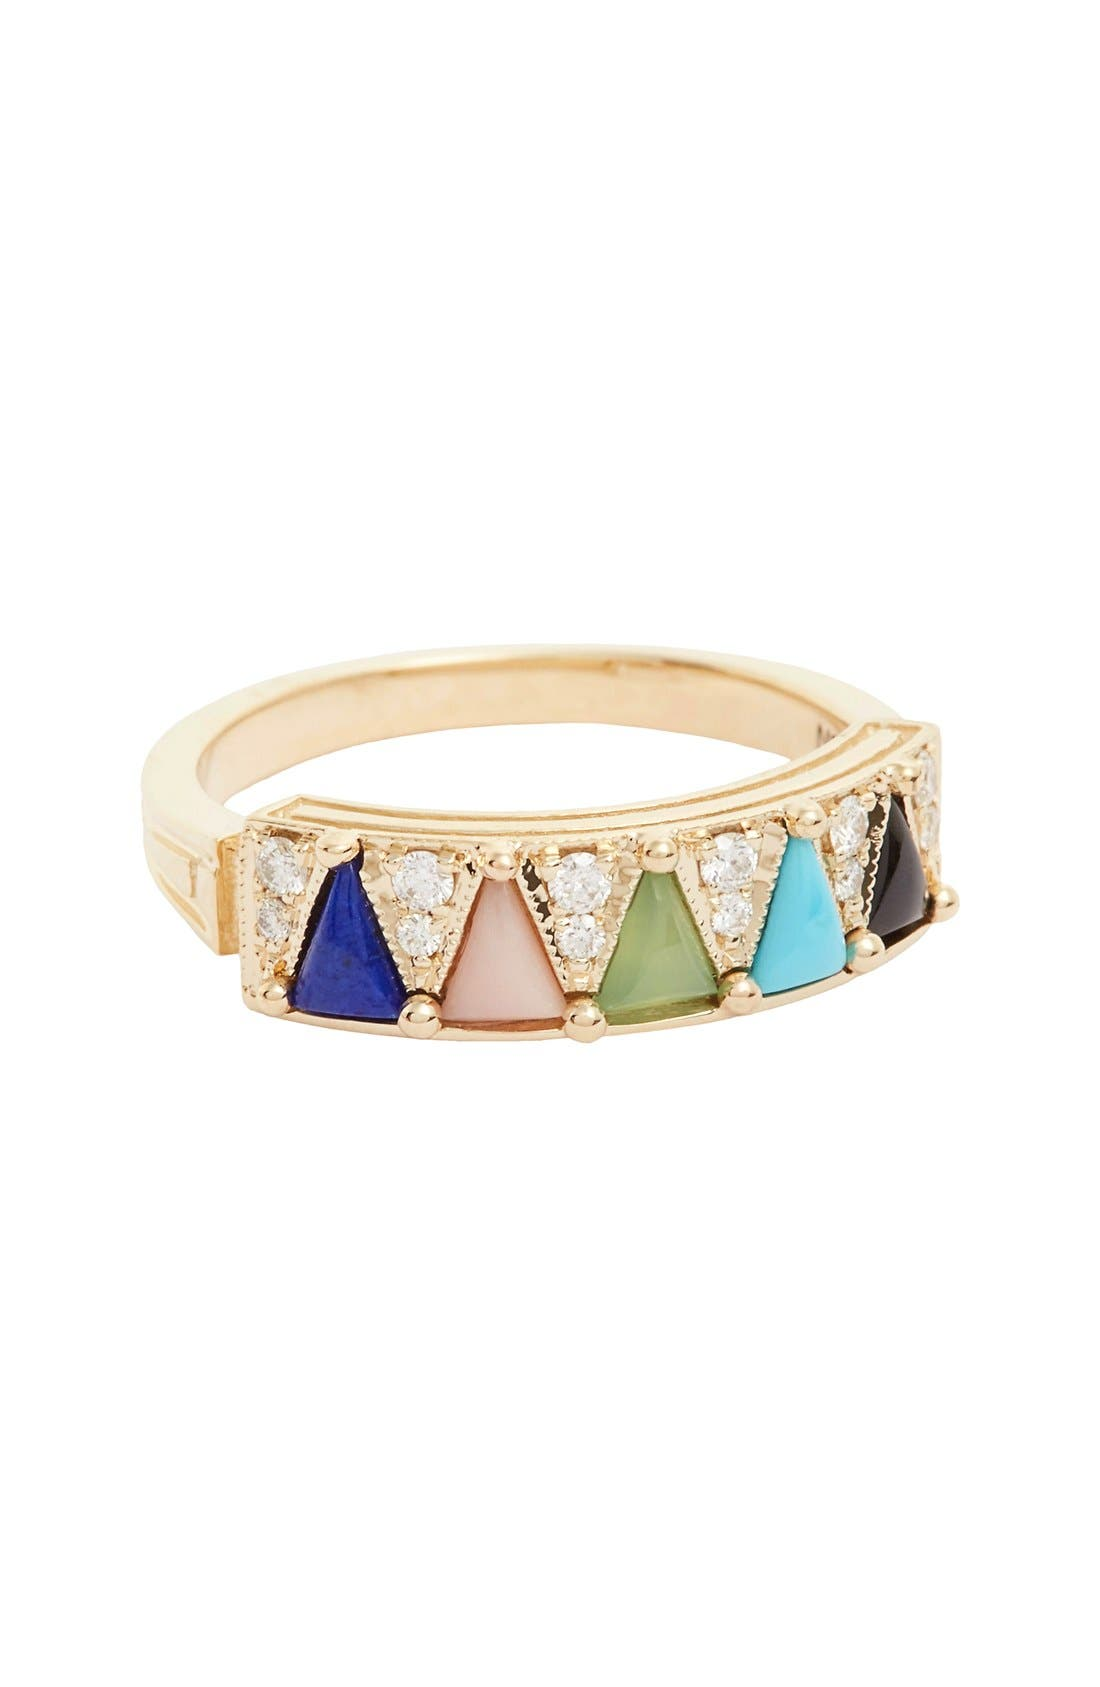 MOCIUN 'Mega' Five Triangle Ring